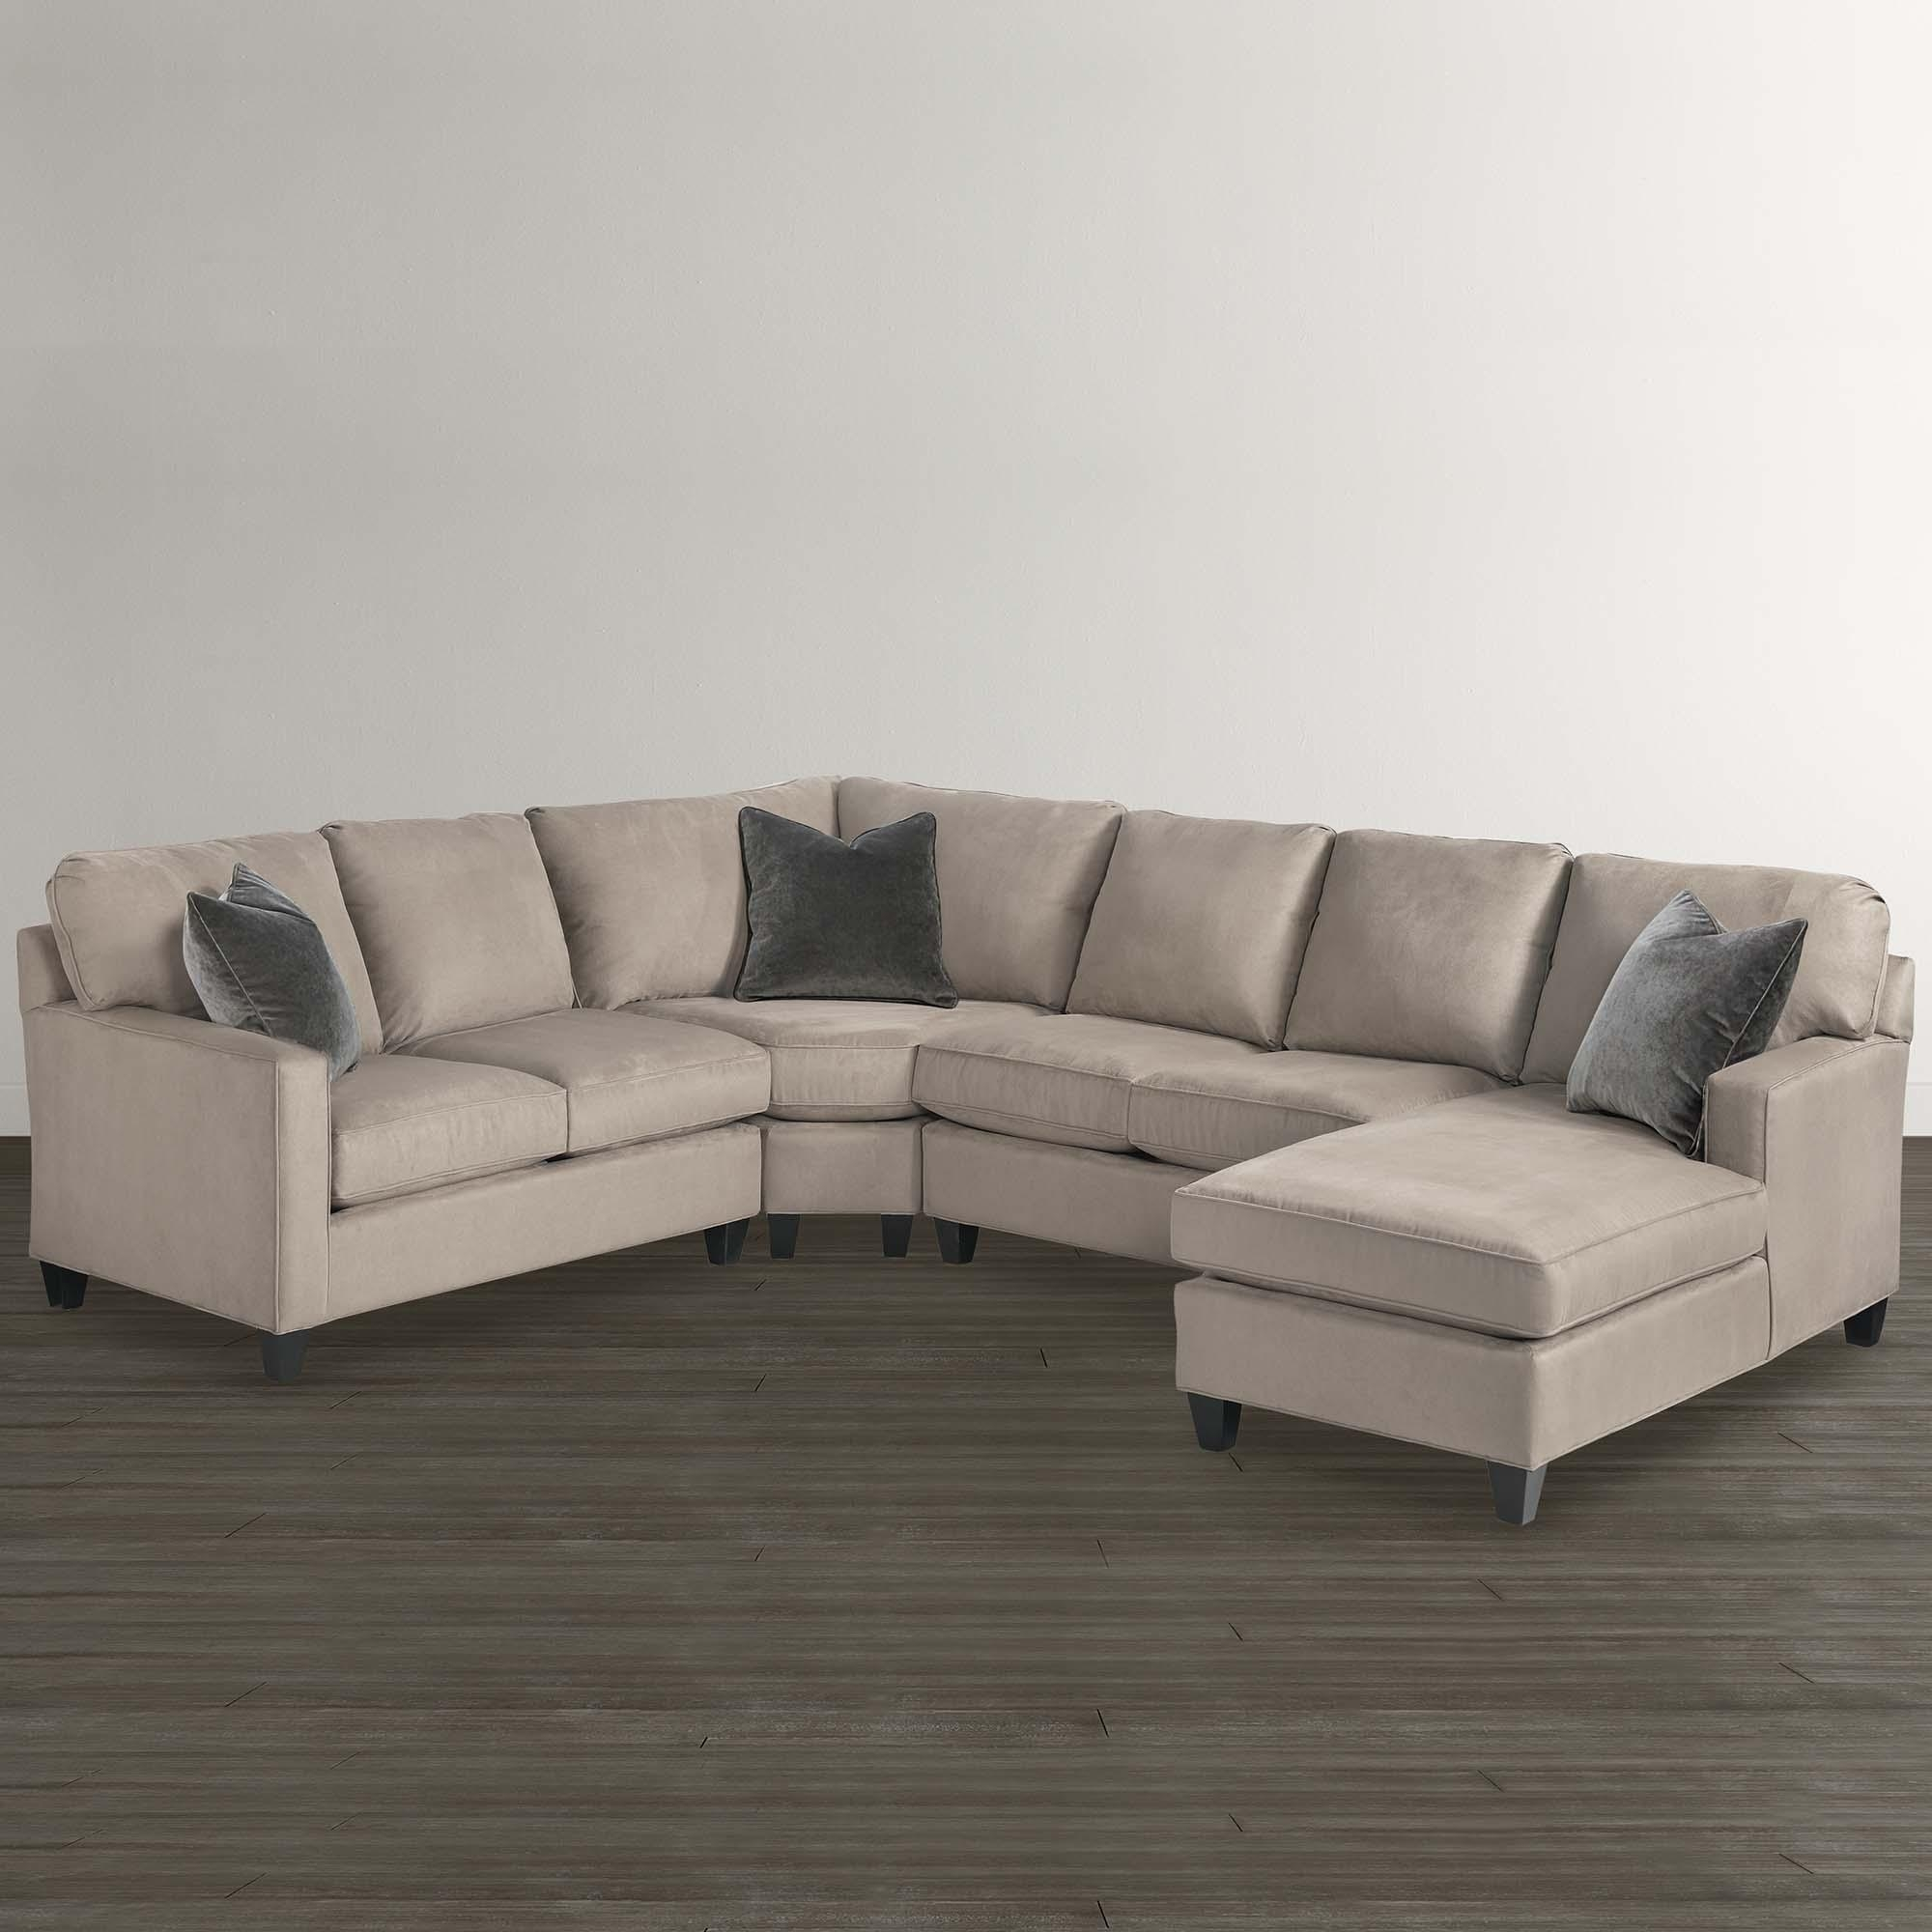 A Sectional Sofa Collection With Something For Everyone Within Custom Made Sectional Sofas (Image 2 of 15)